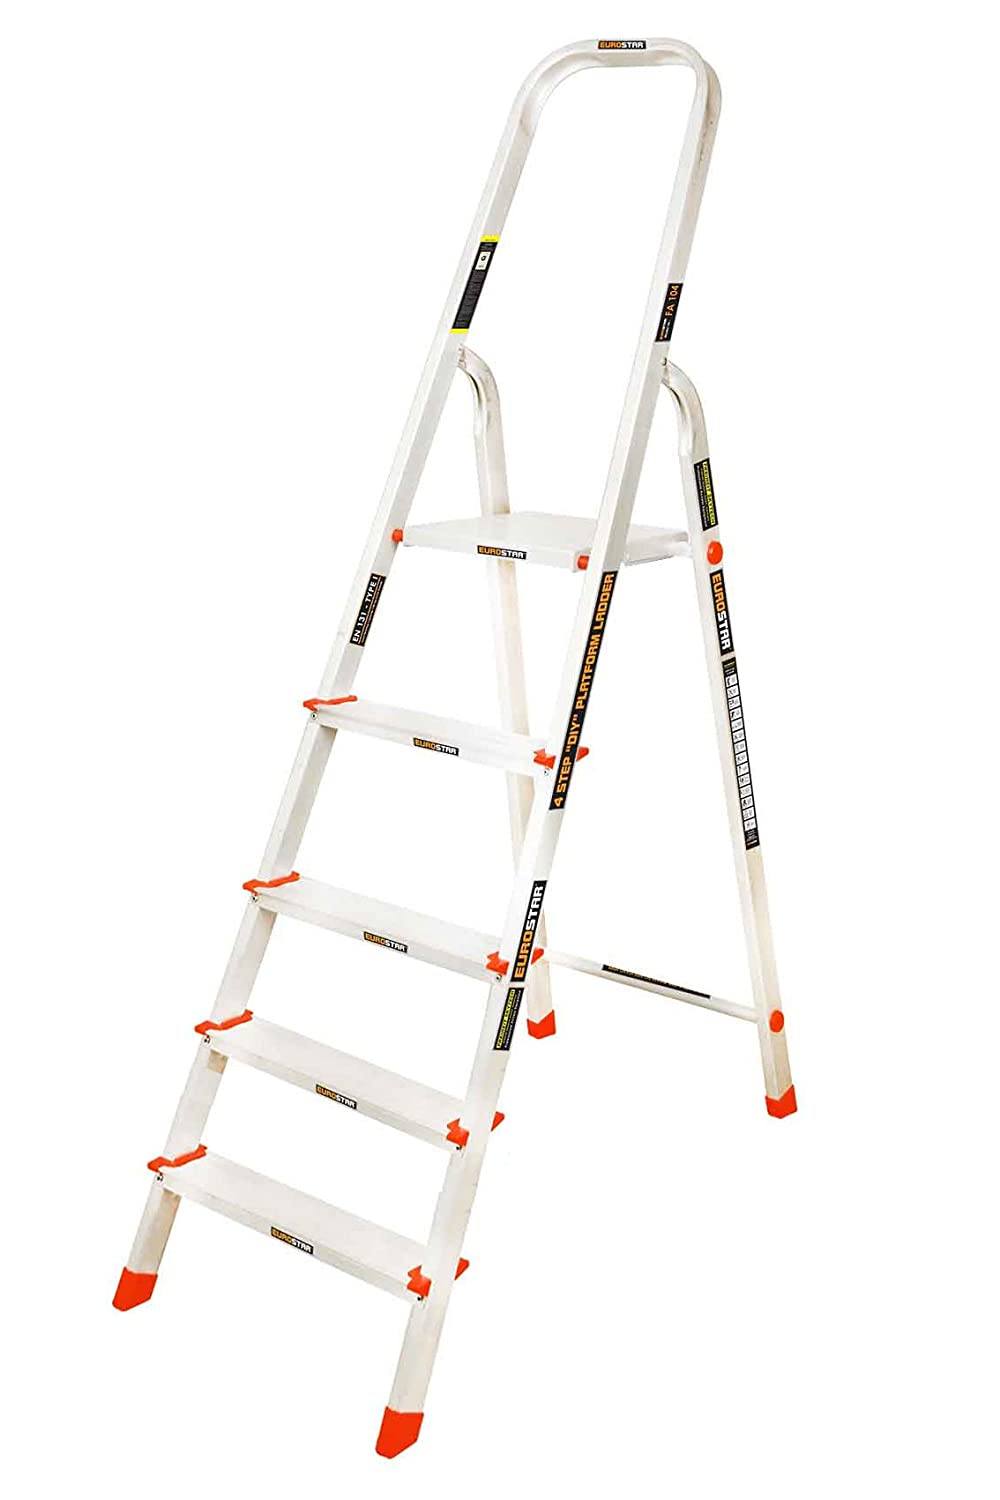 Eurostar 105 Aluminium 4 Step with Platform Ladder (Silver)